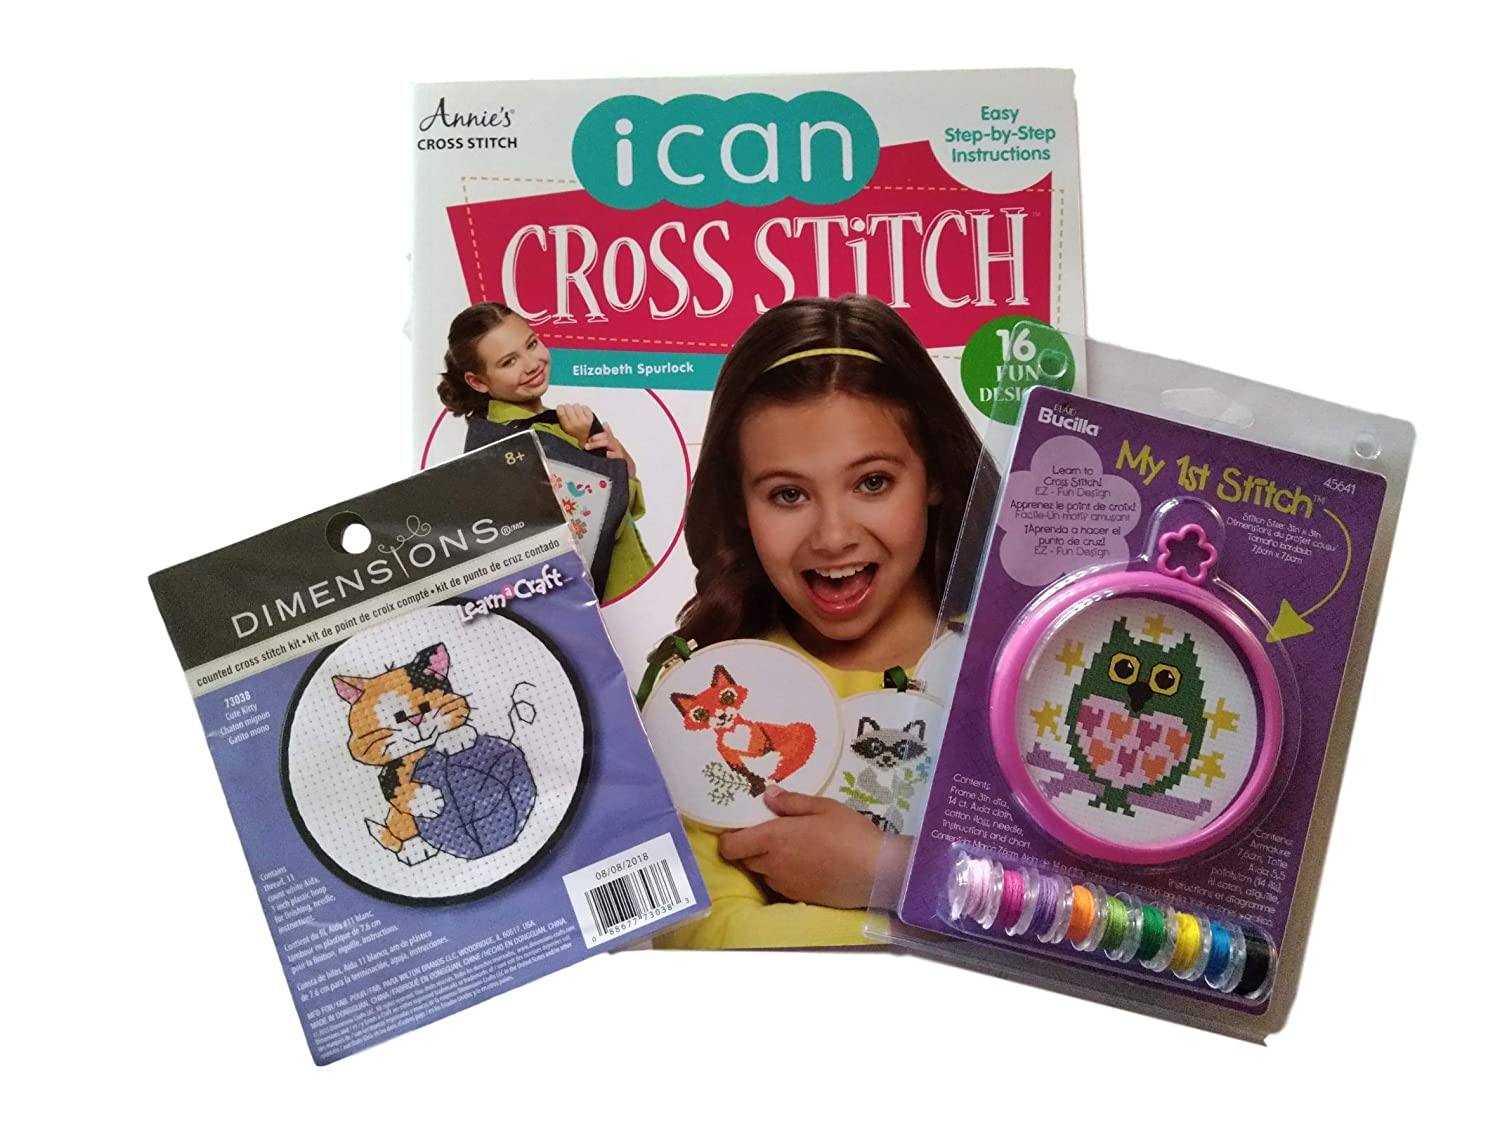 Beginner Counted Cross Stitch Bundle with 2 Counted Cross Stitch Kits and 1 Annies Cross Stitch I Can Cross Stitch Book 3 Items